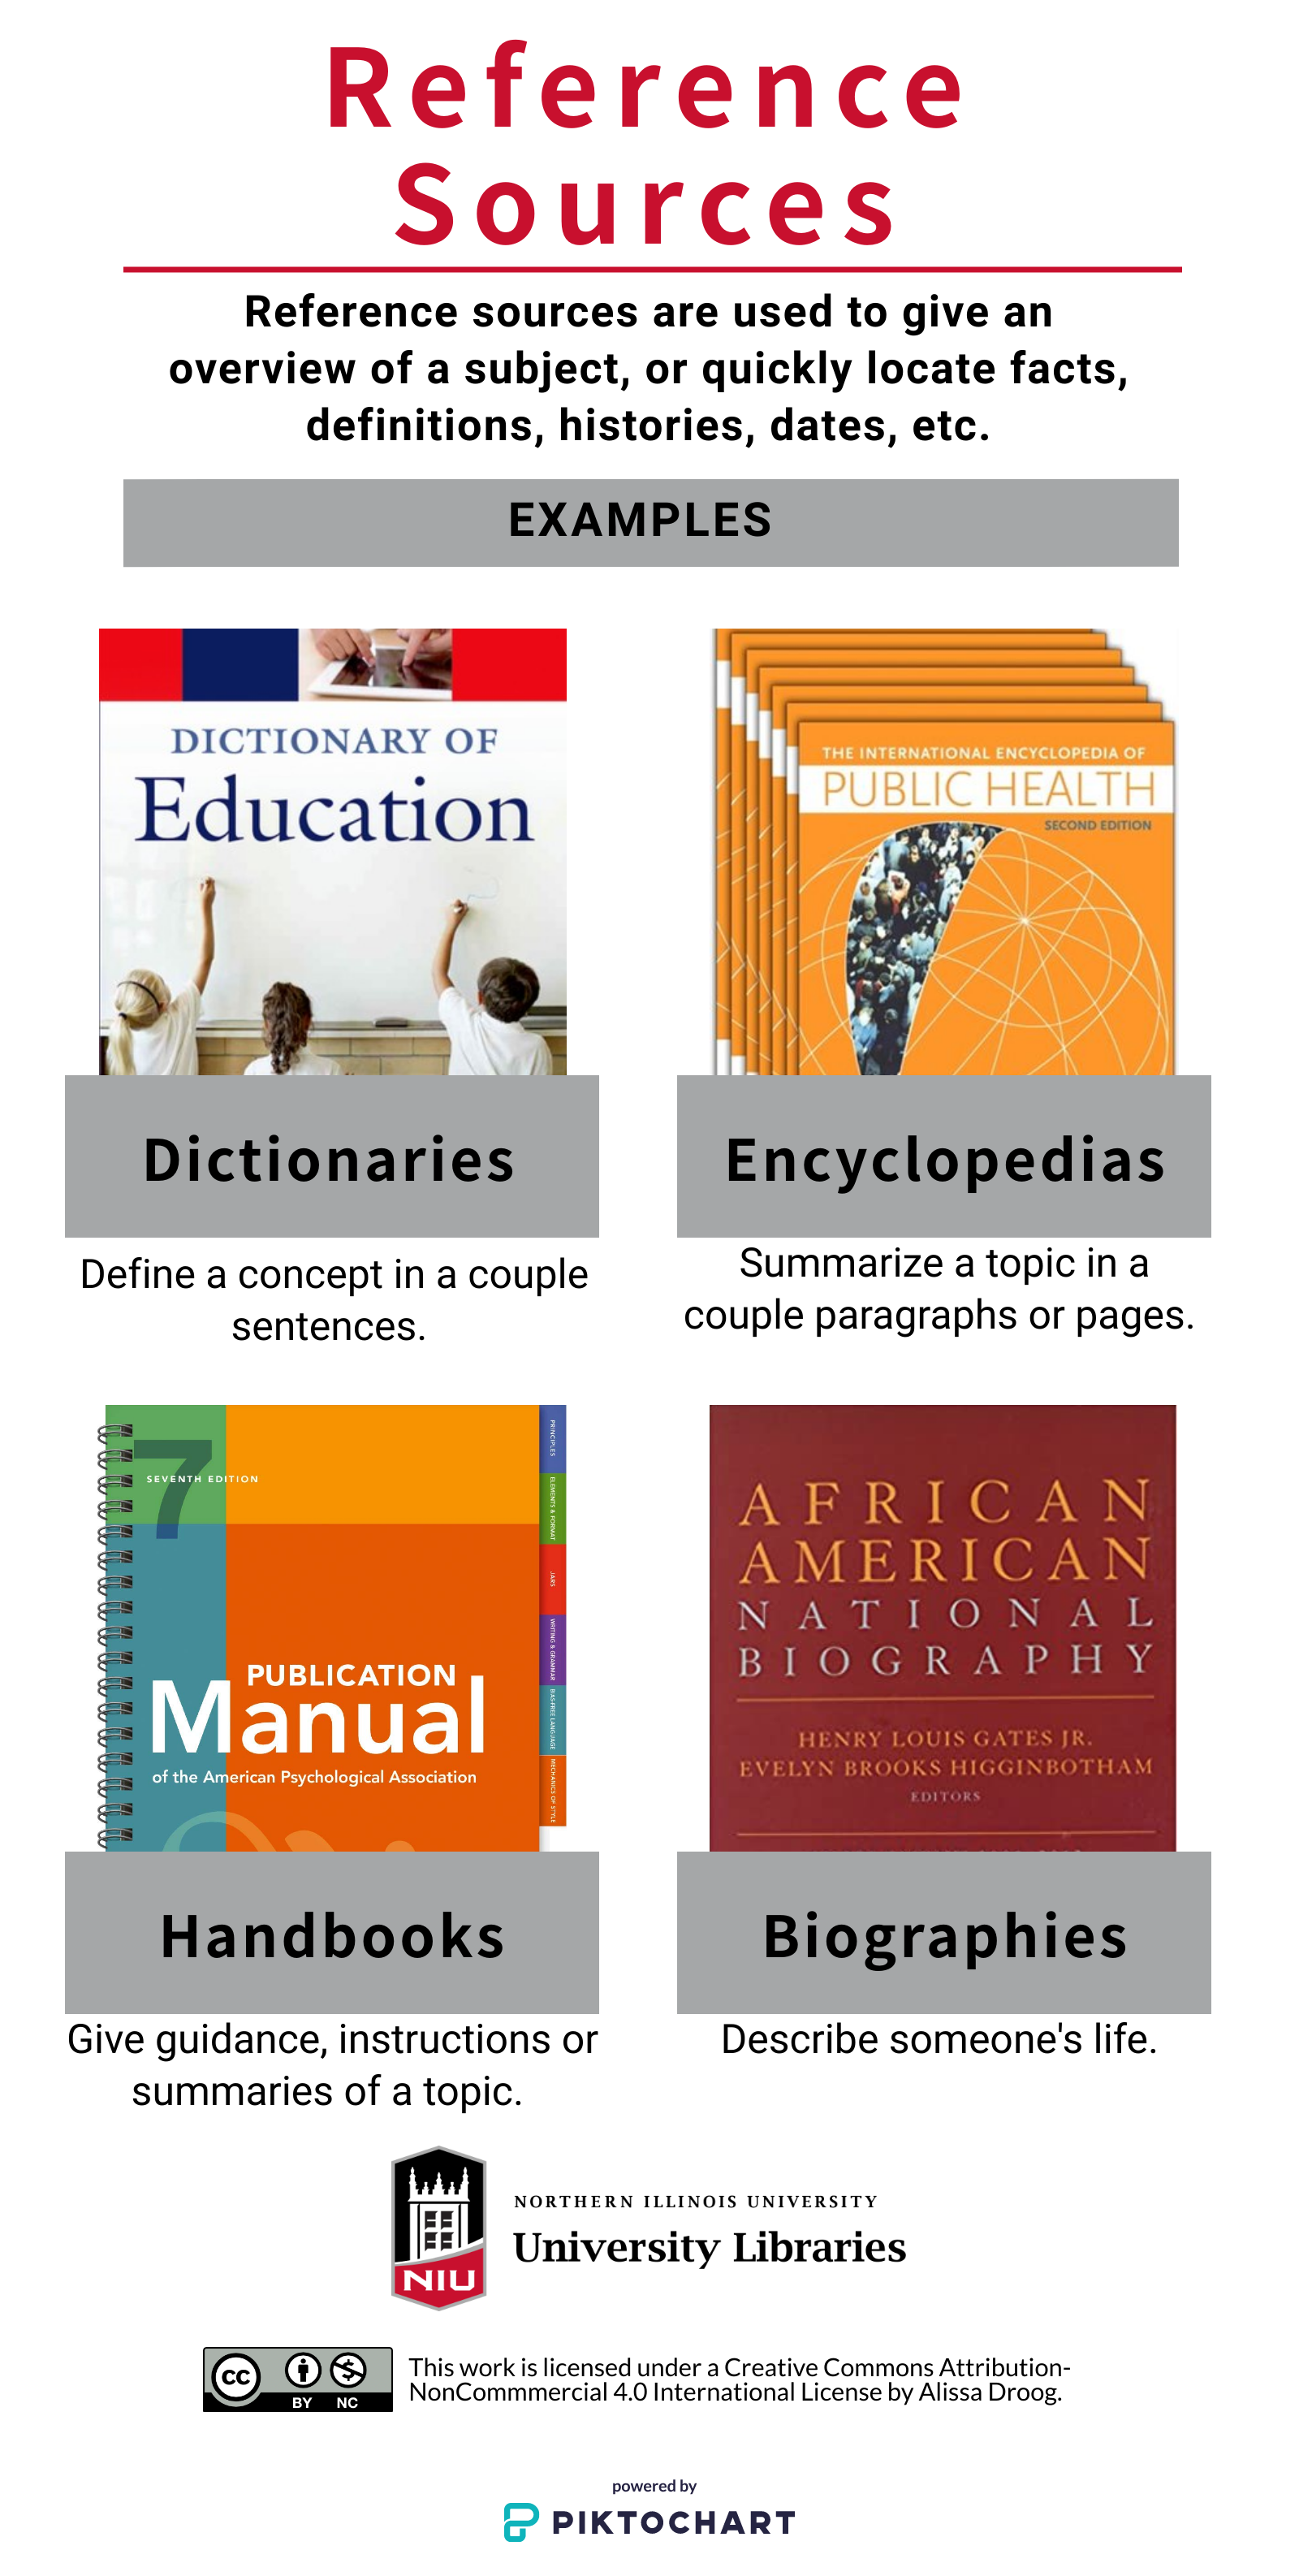 Reference sources are used to give an overview of a subject, quickly locate facts, definitiona, histories, dates. etc. Examples include: dictionaries, encyclopedias, handbooks and biographies.